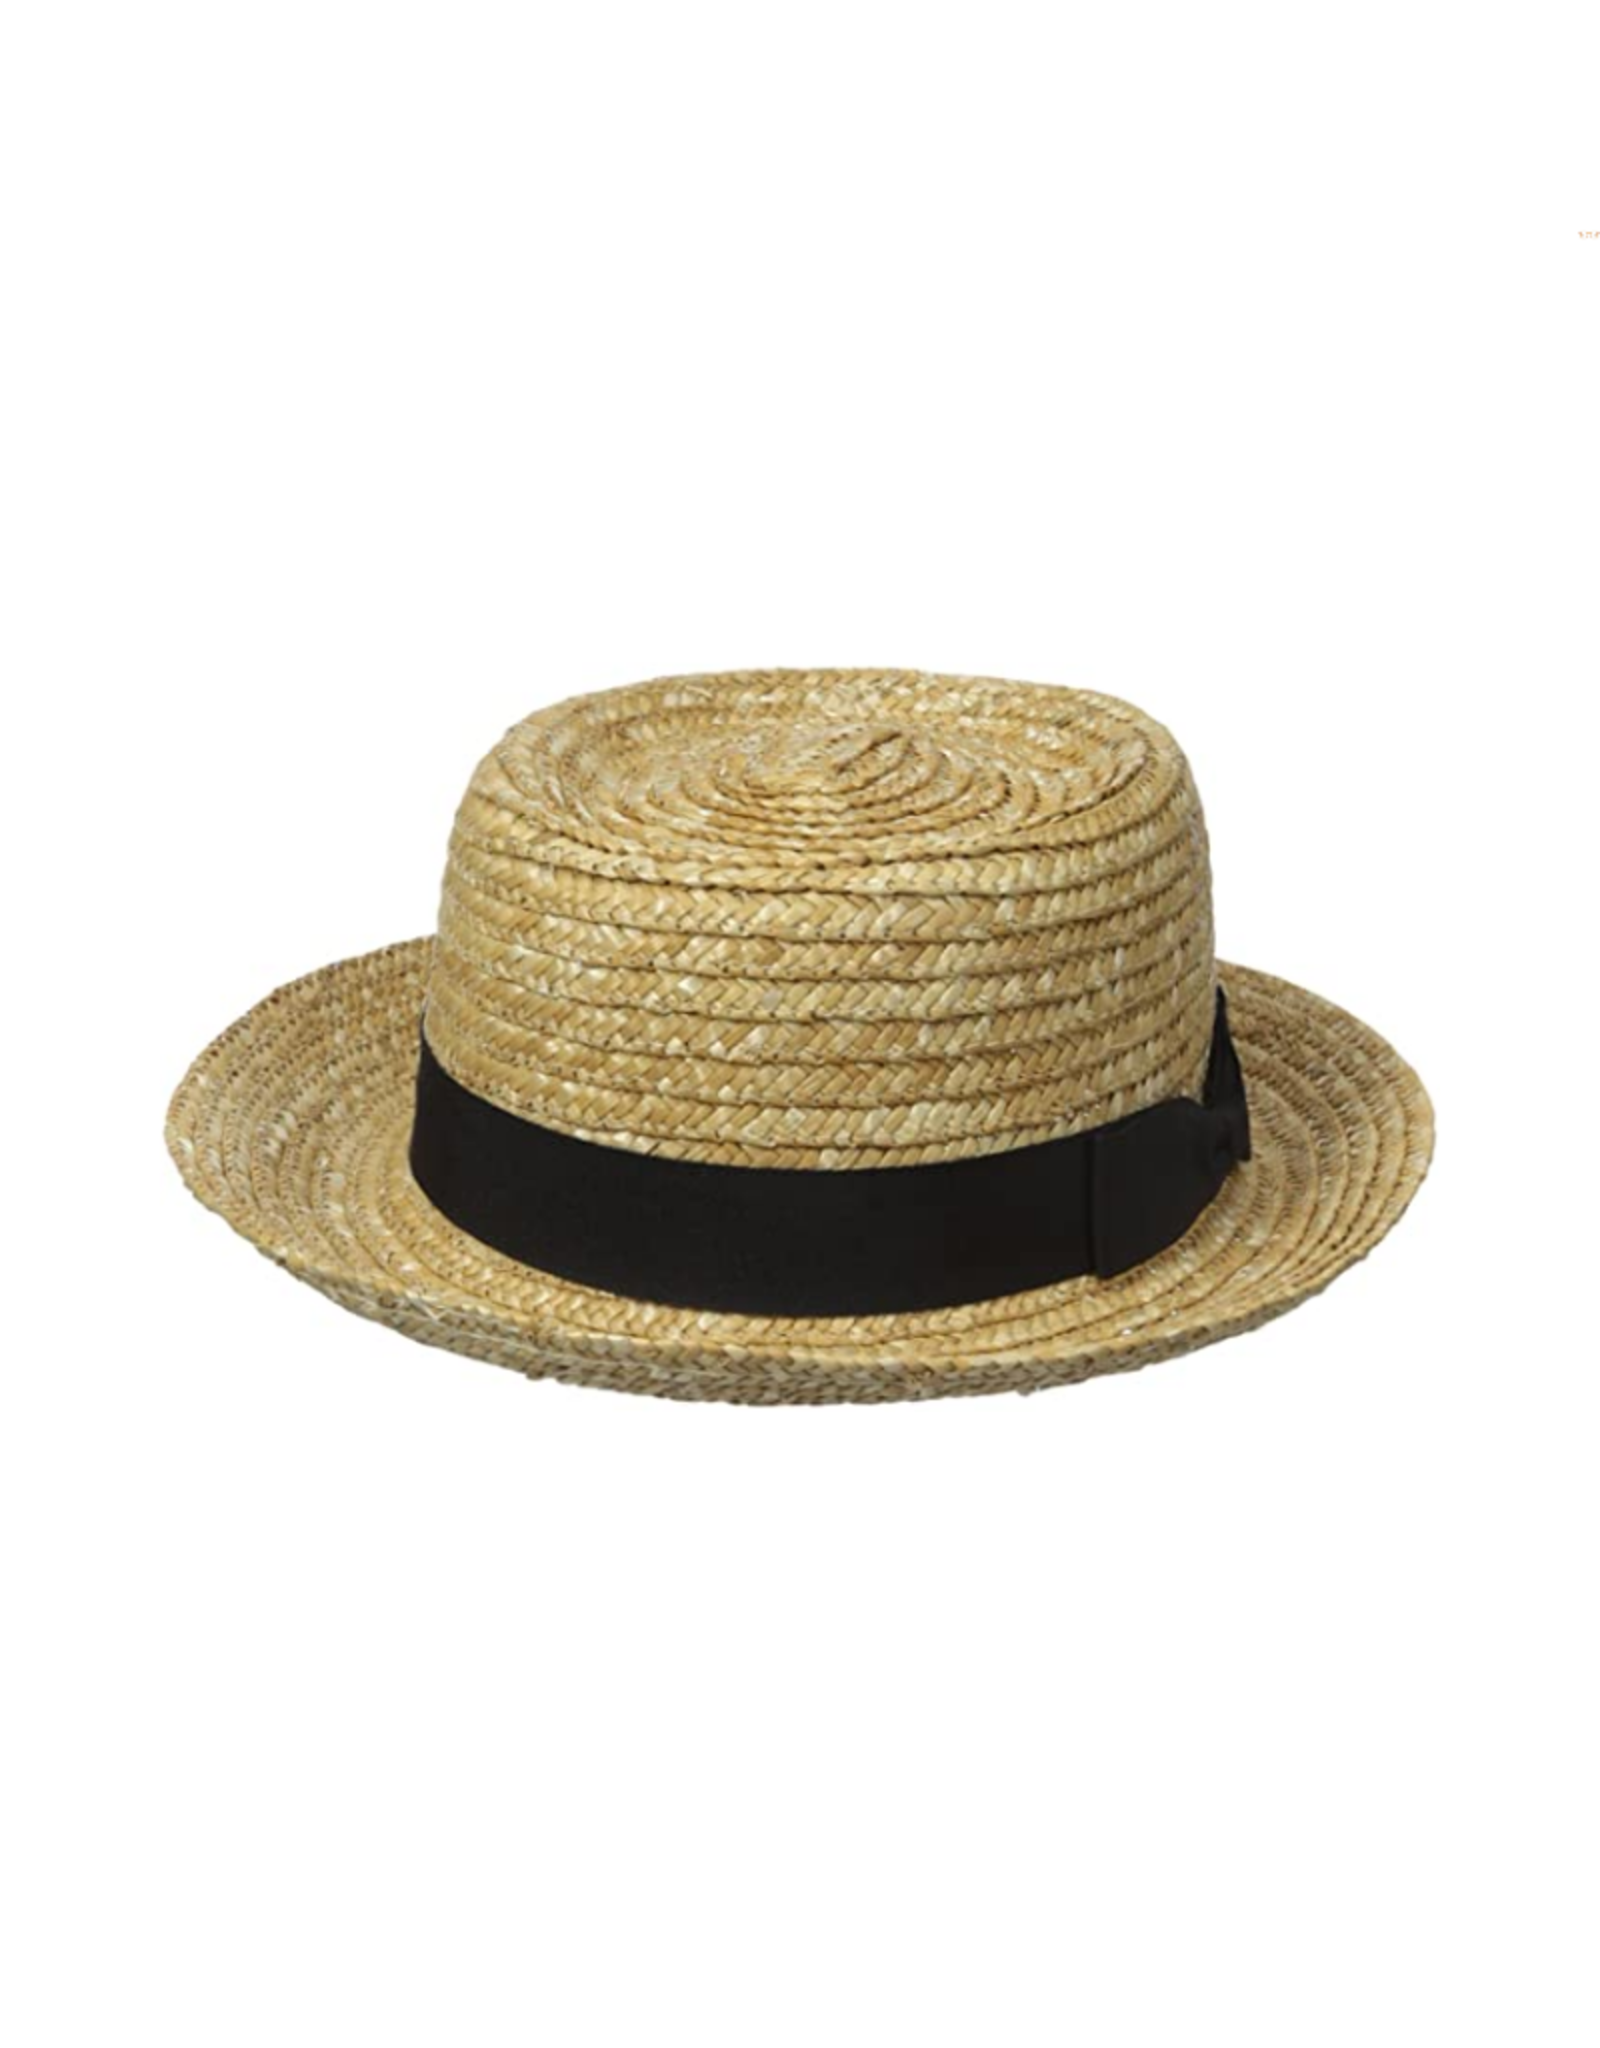 HAT-BOATER, STRAW, BLACK BAND, NATURAL